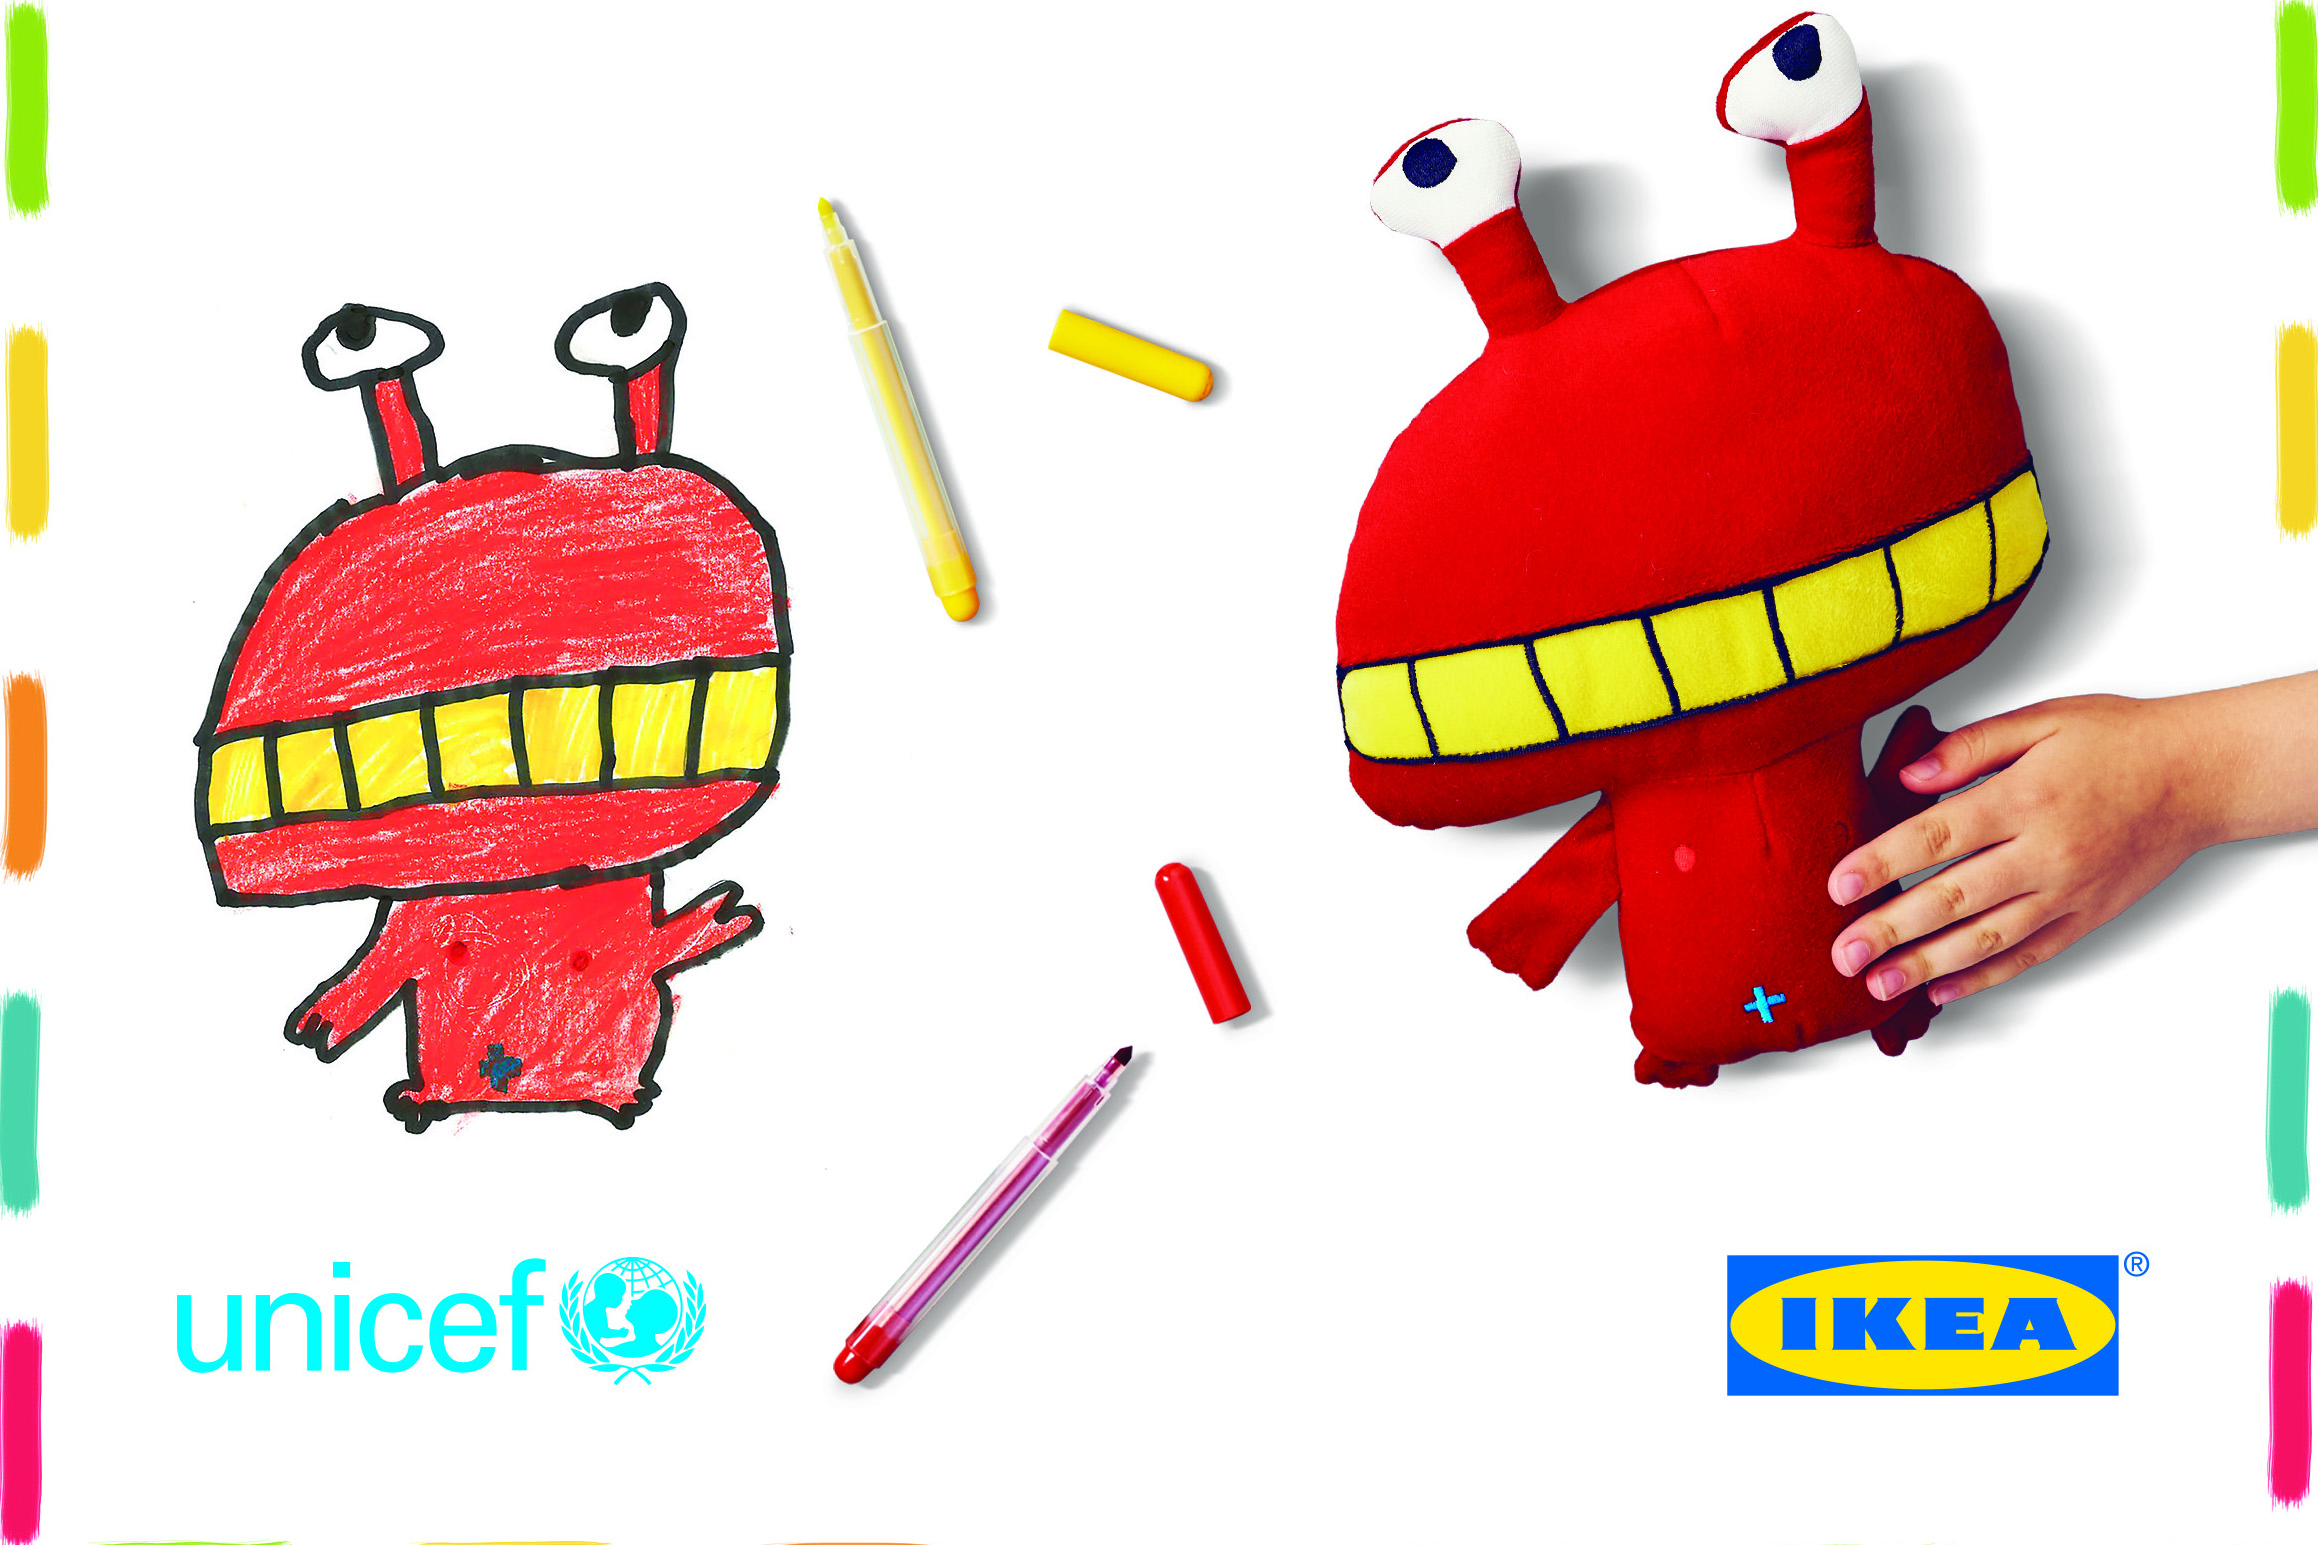 IKEA_Drawing_Competition_20161